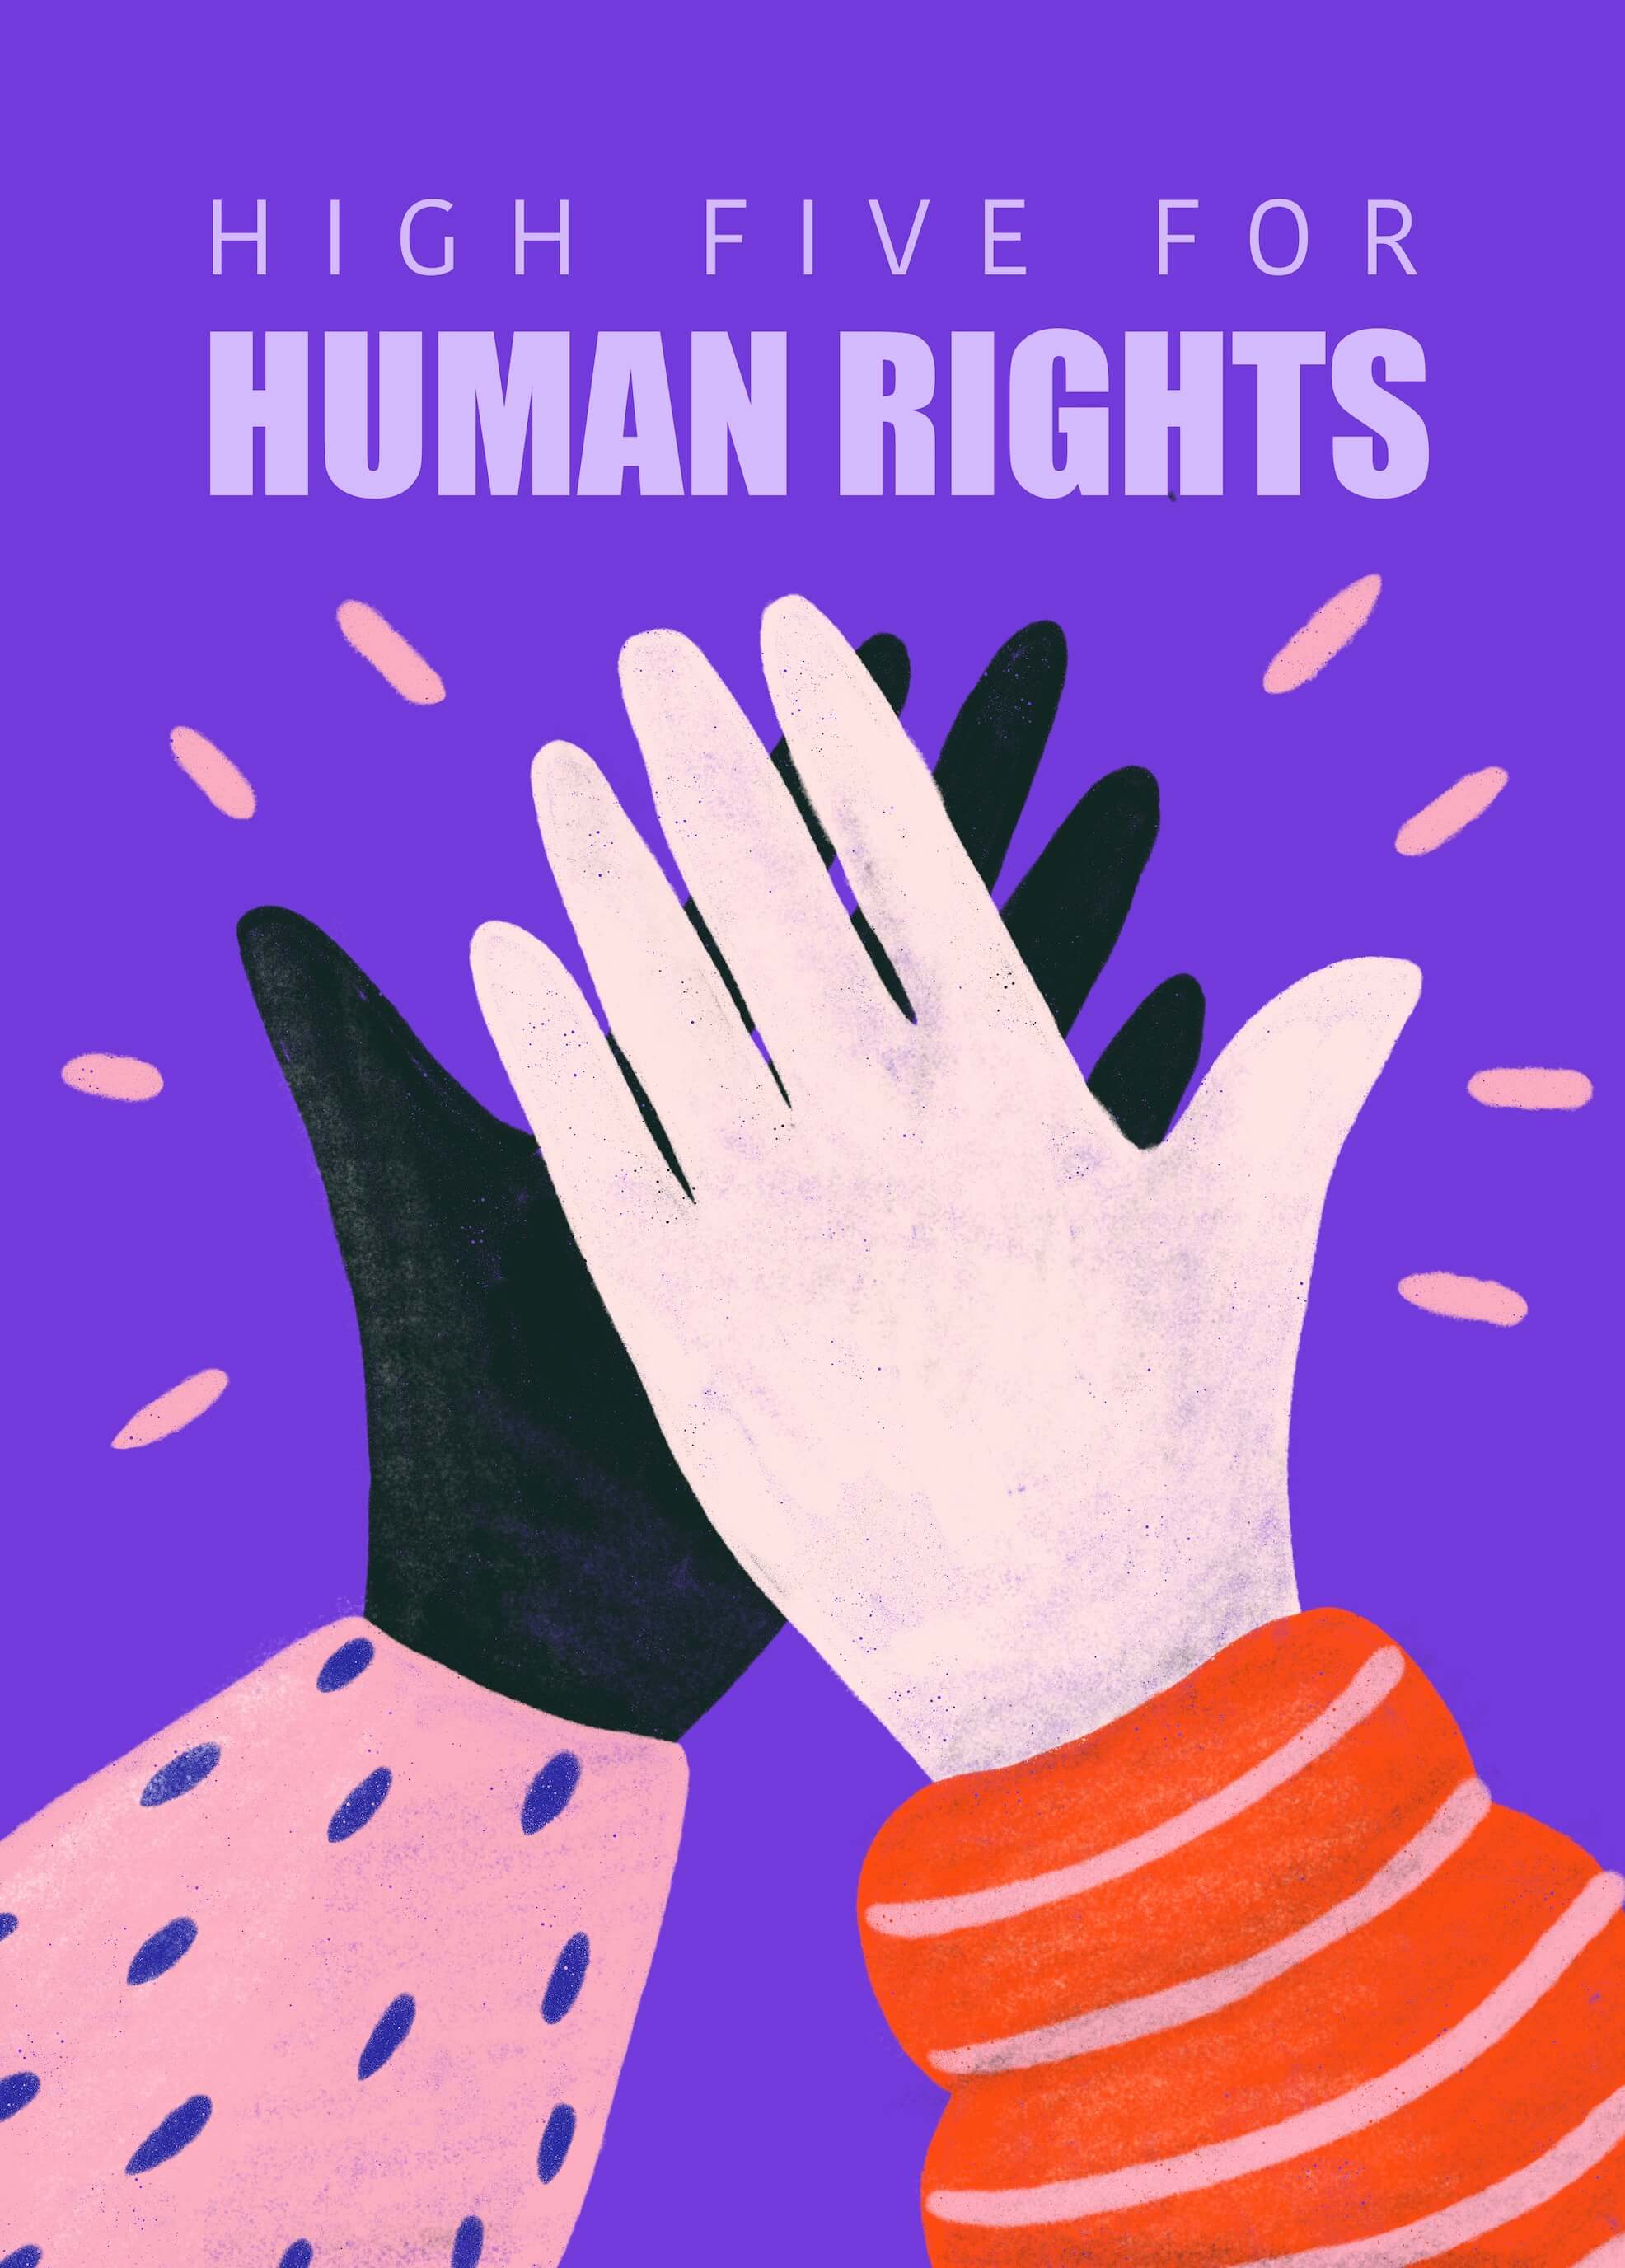 High Five For Human Rights main image